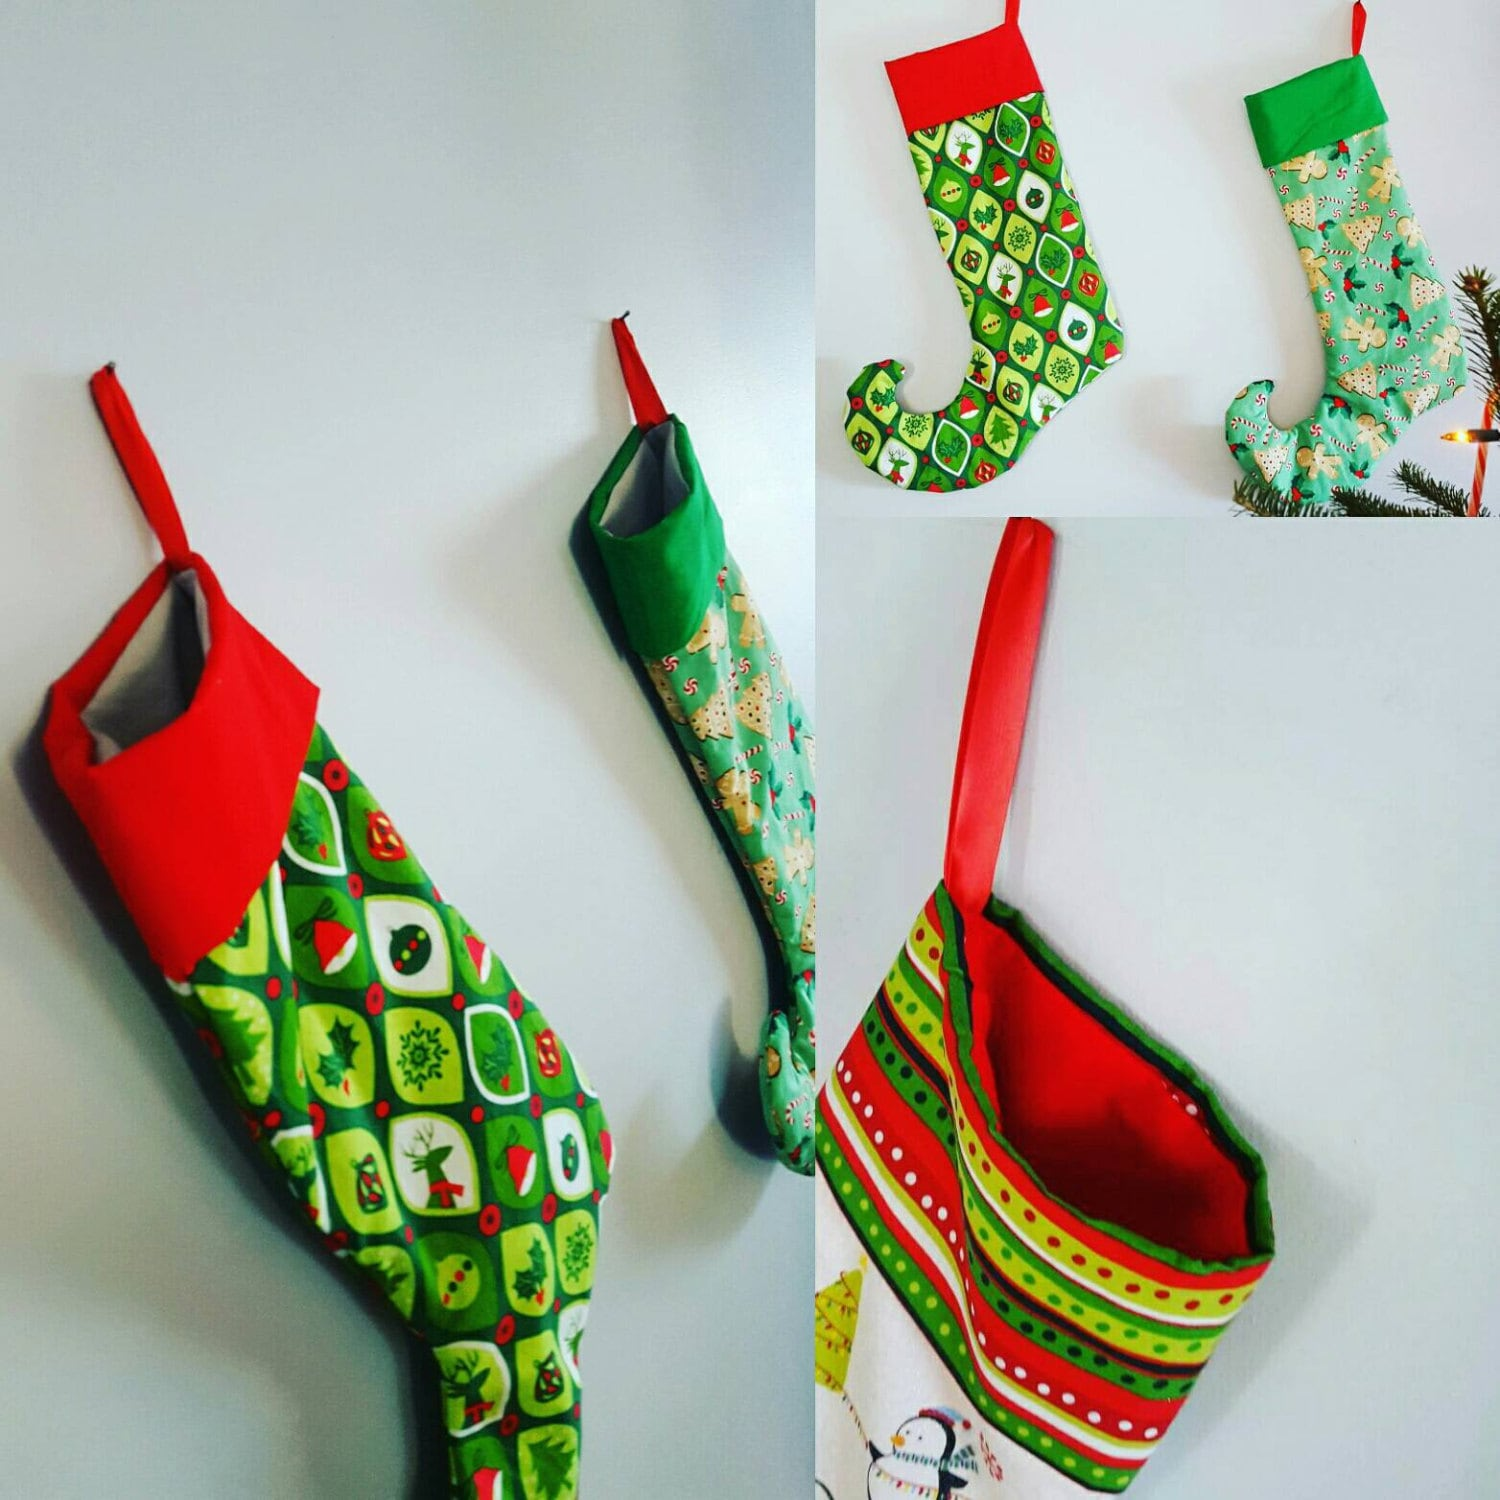 Handmade Christmas Stockings Handmade Holiday Stockings Elf Style Christmas Stockings